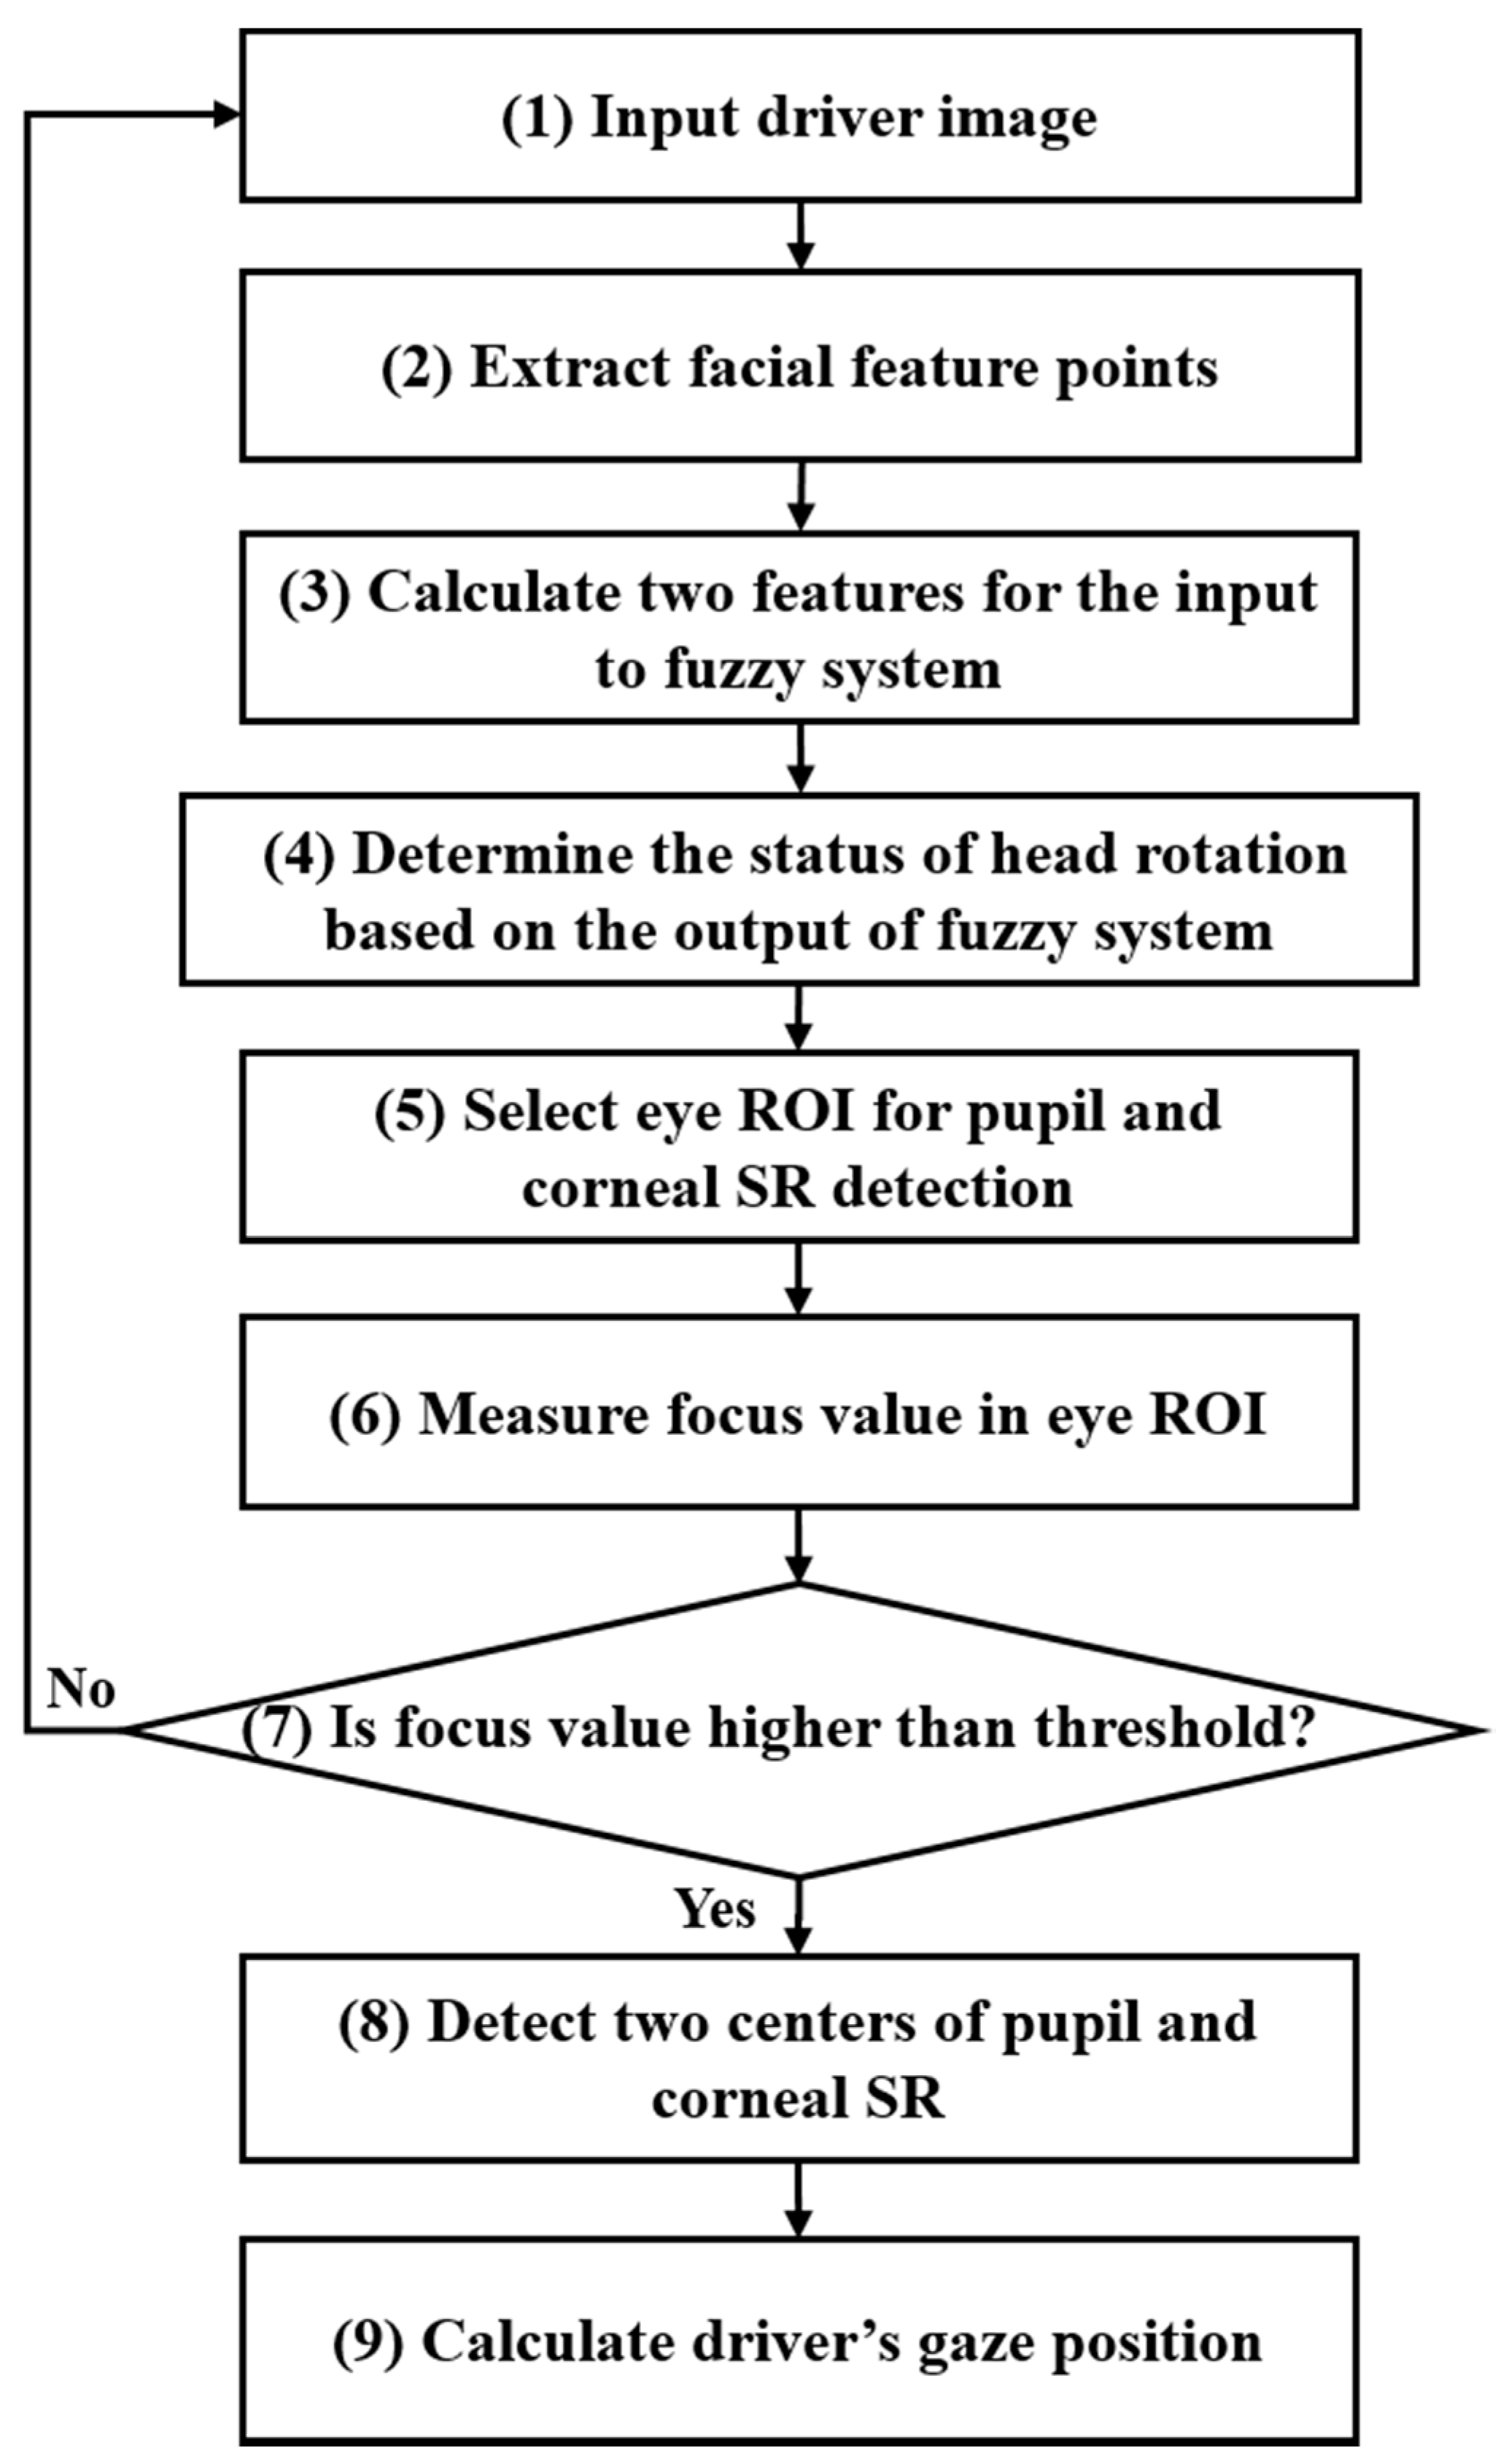 Symmetry | Free Full-Text | Fuzzy-System-Based Detection of Pupil